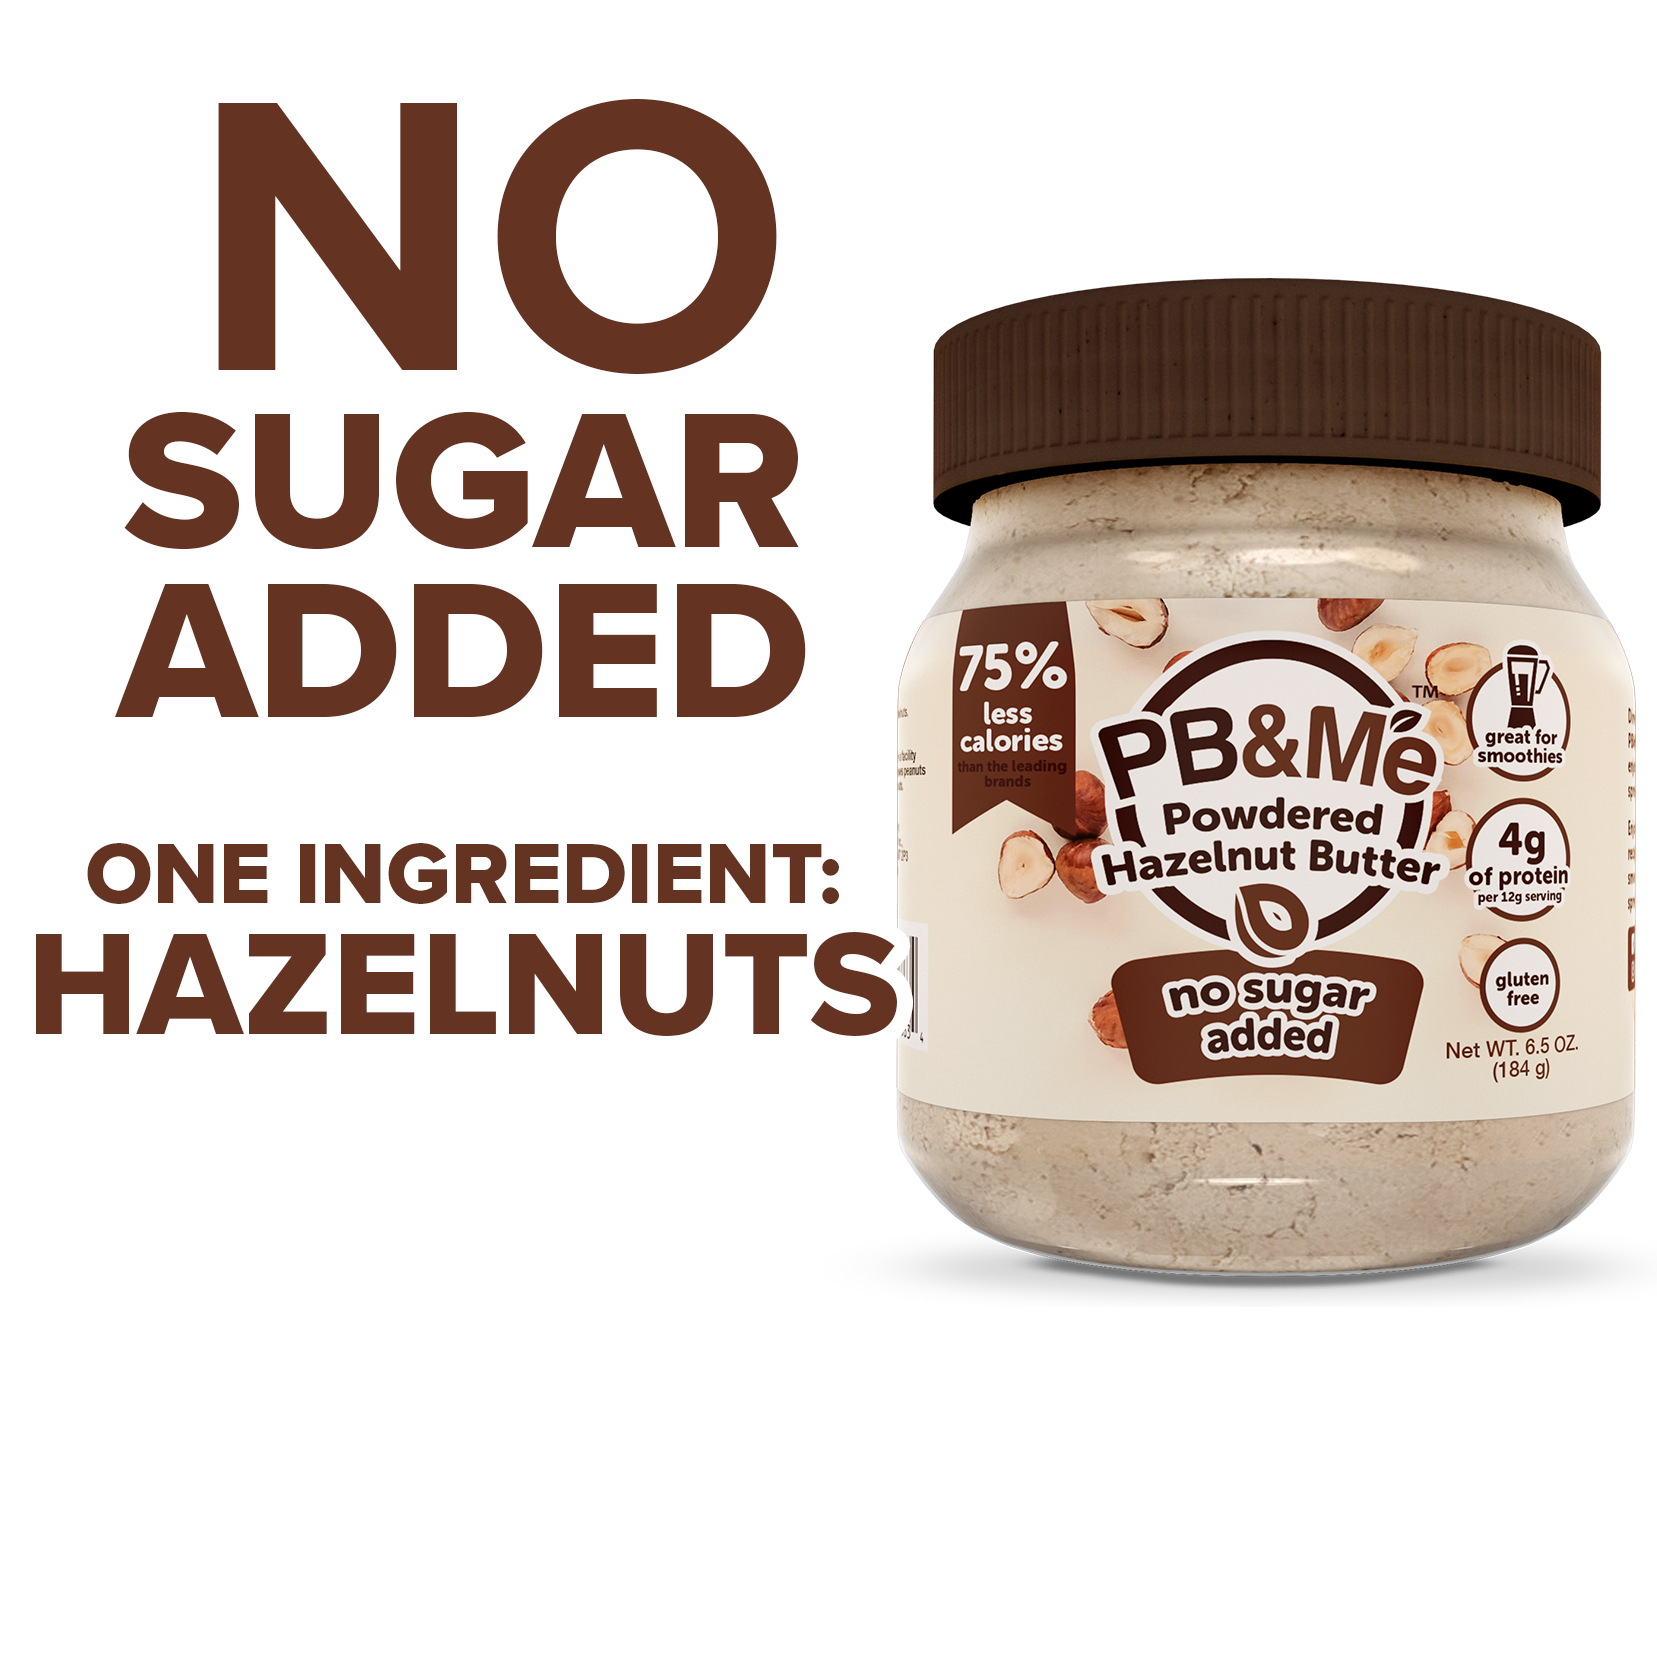 Powdered Hazelnut Butter - No Sugar Added (184g)